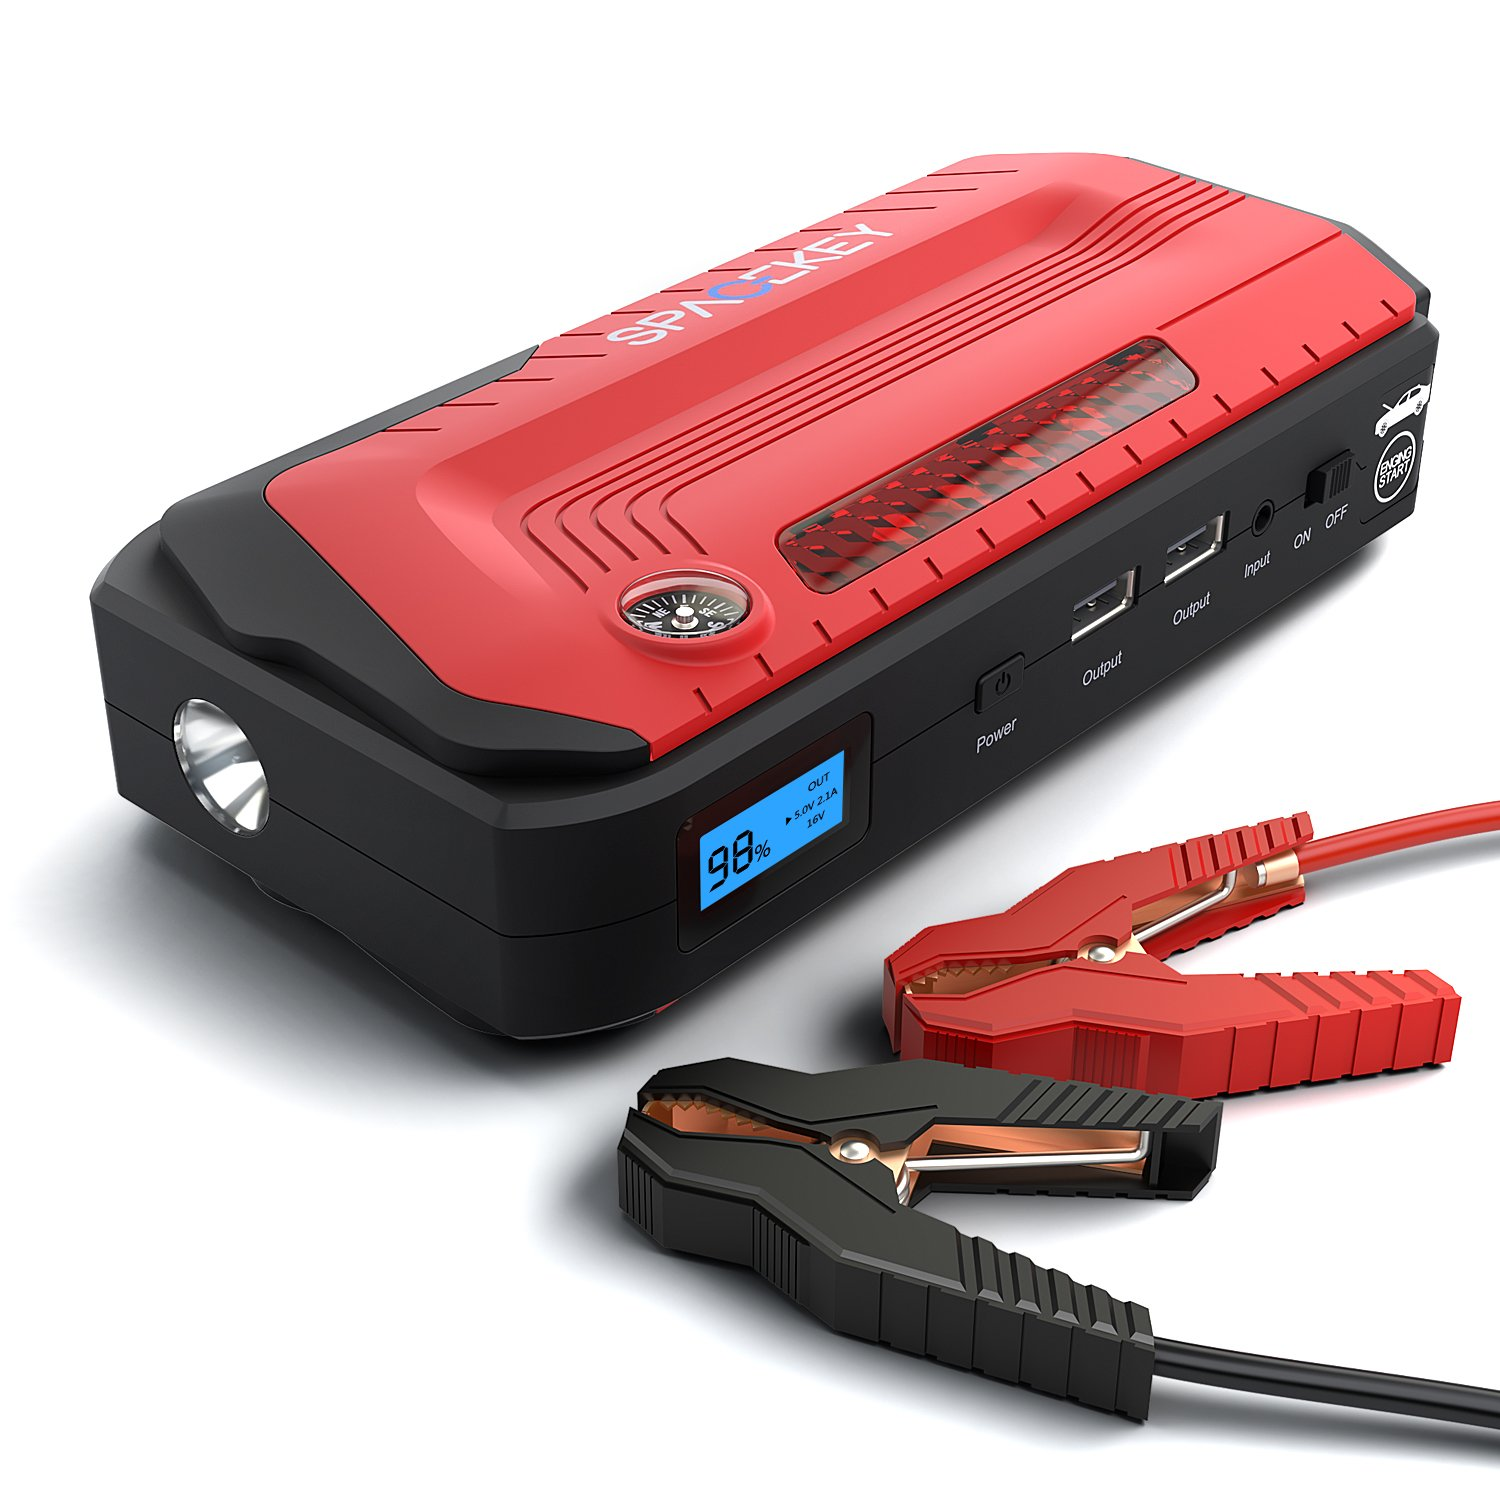 Jump Starter by Spacekey - 1200A Peak Portable Car Jump Starter (Up to 8.0L Gas or 6.5L Diesel), Portable Auto Battery Pack, Booster Charger with QC3.0 Output and LED Flashlight